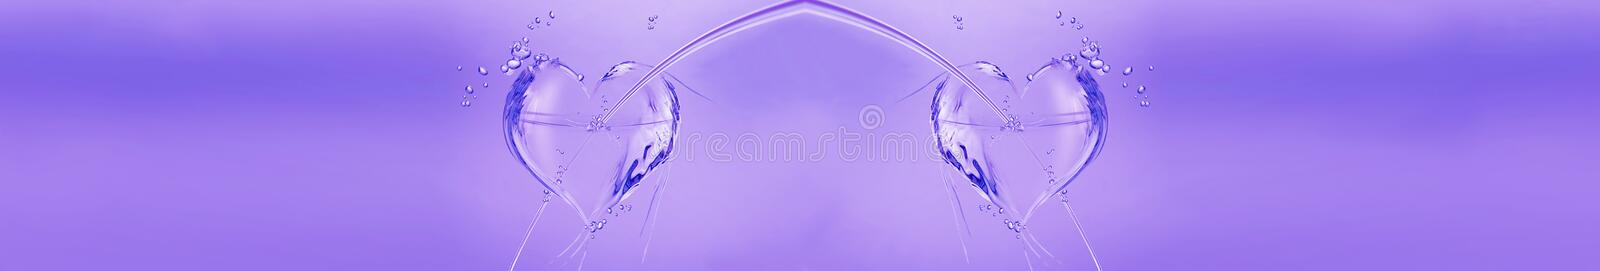 Purple Water Hearts stock images